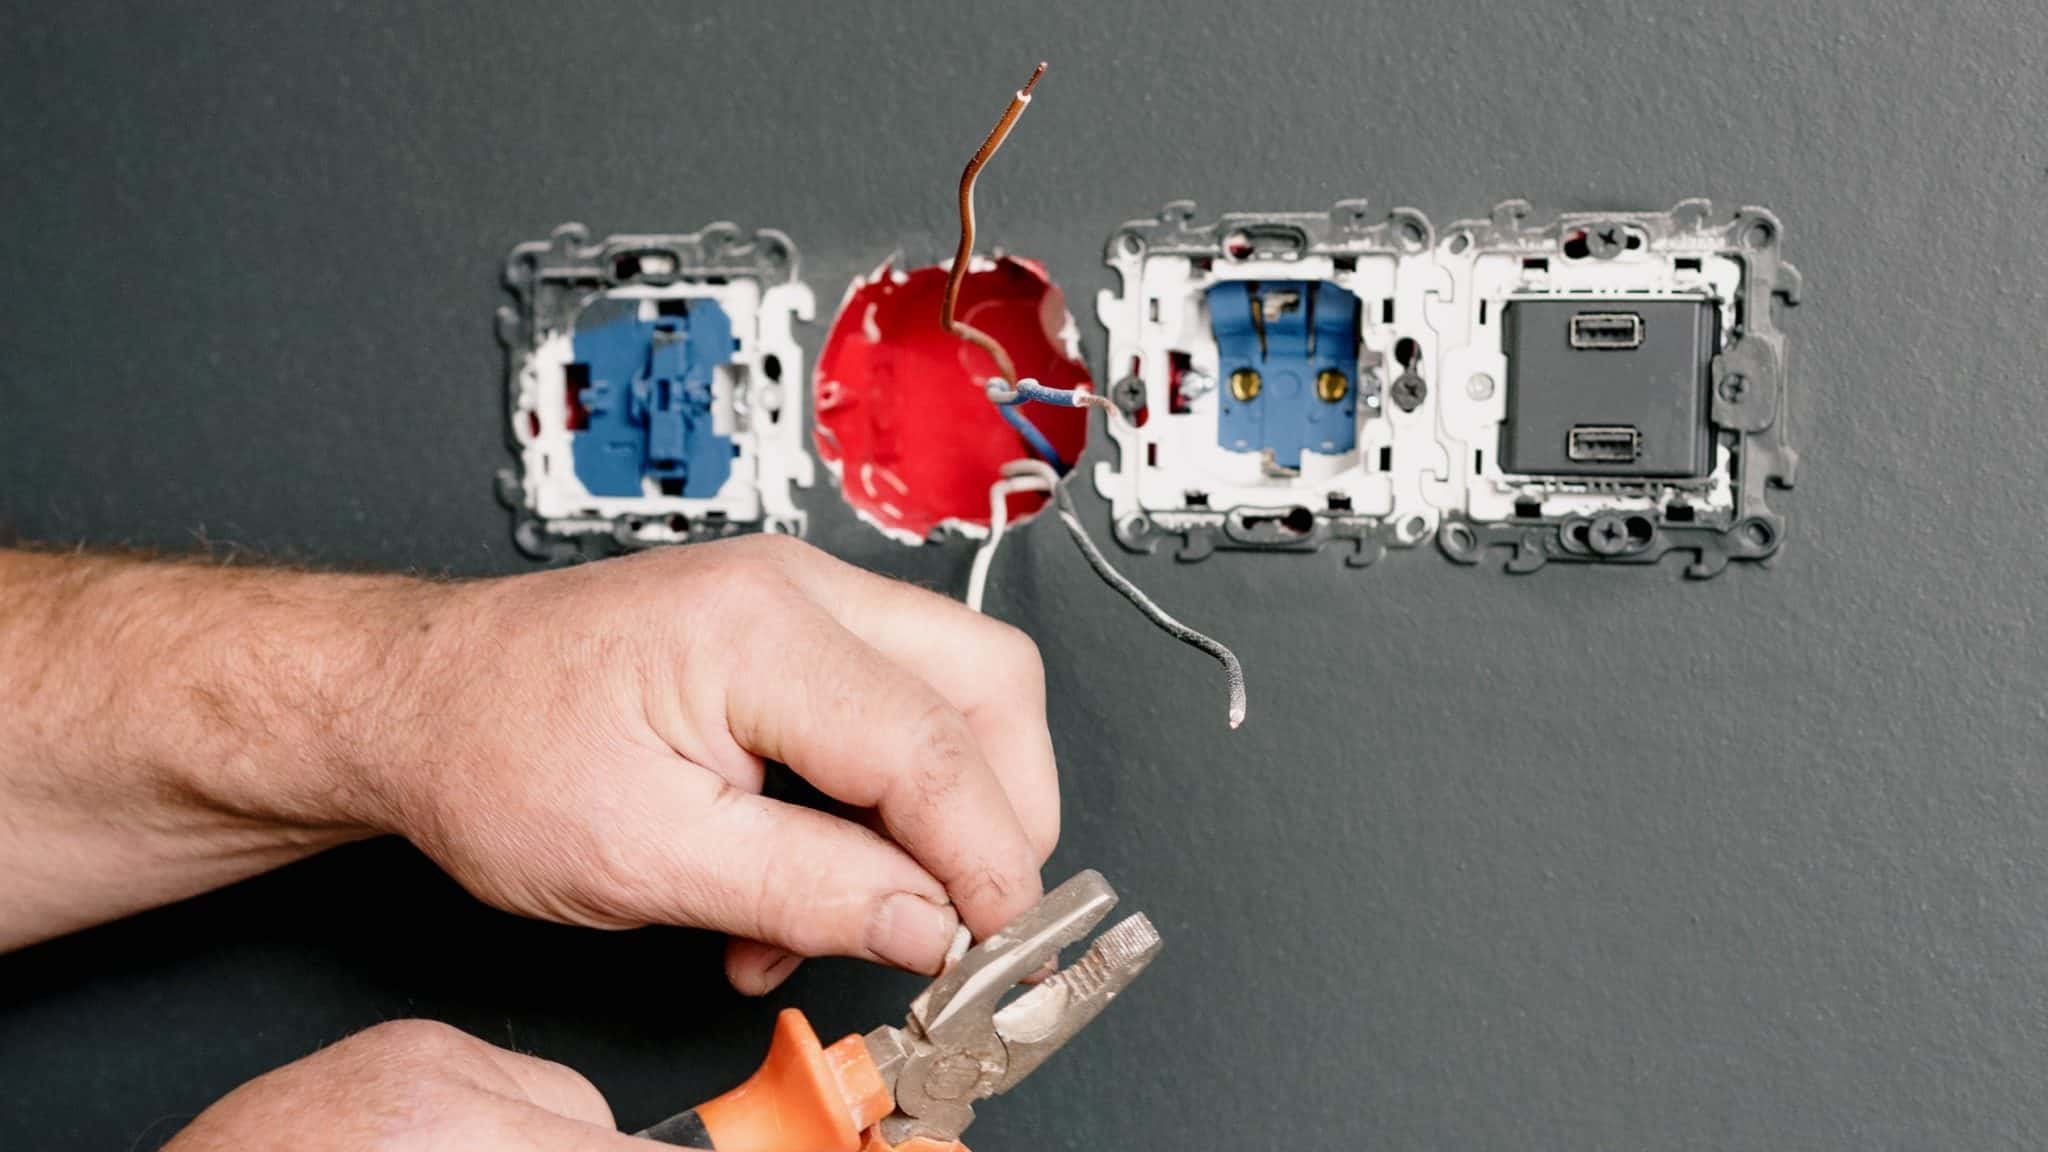 Electrician's hands holding pliers attaching wires to wall sockets on grey wall